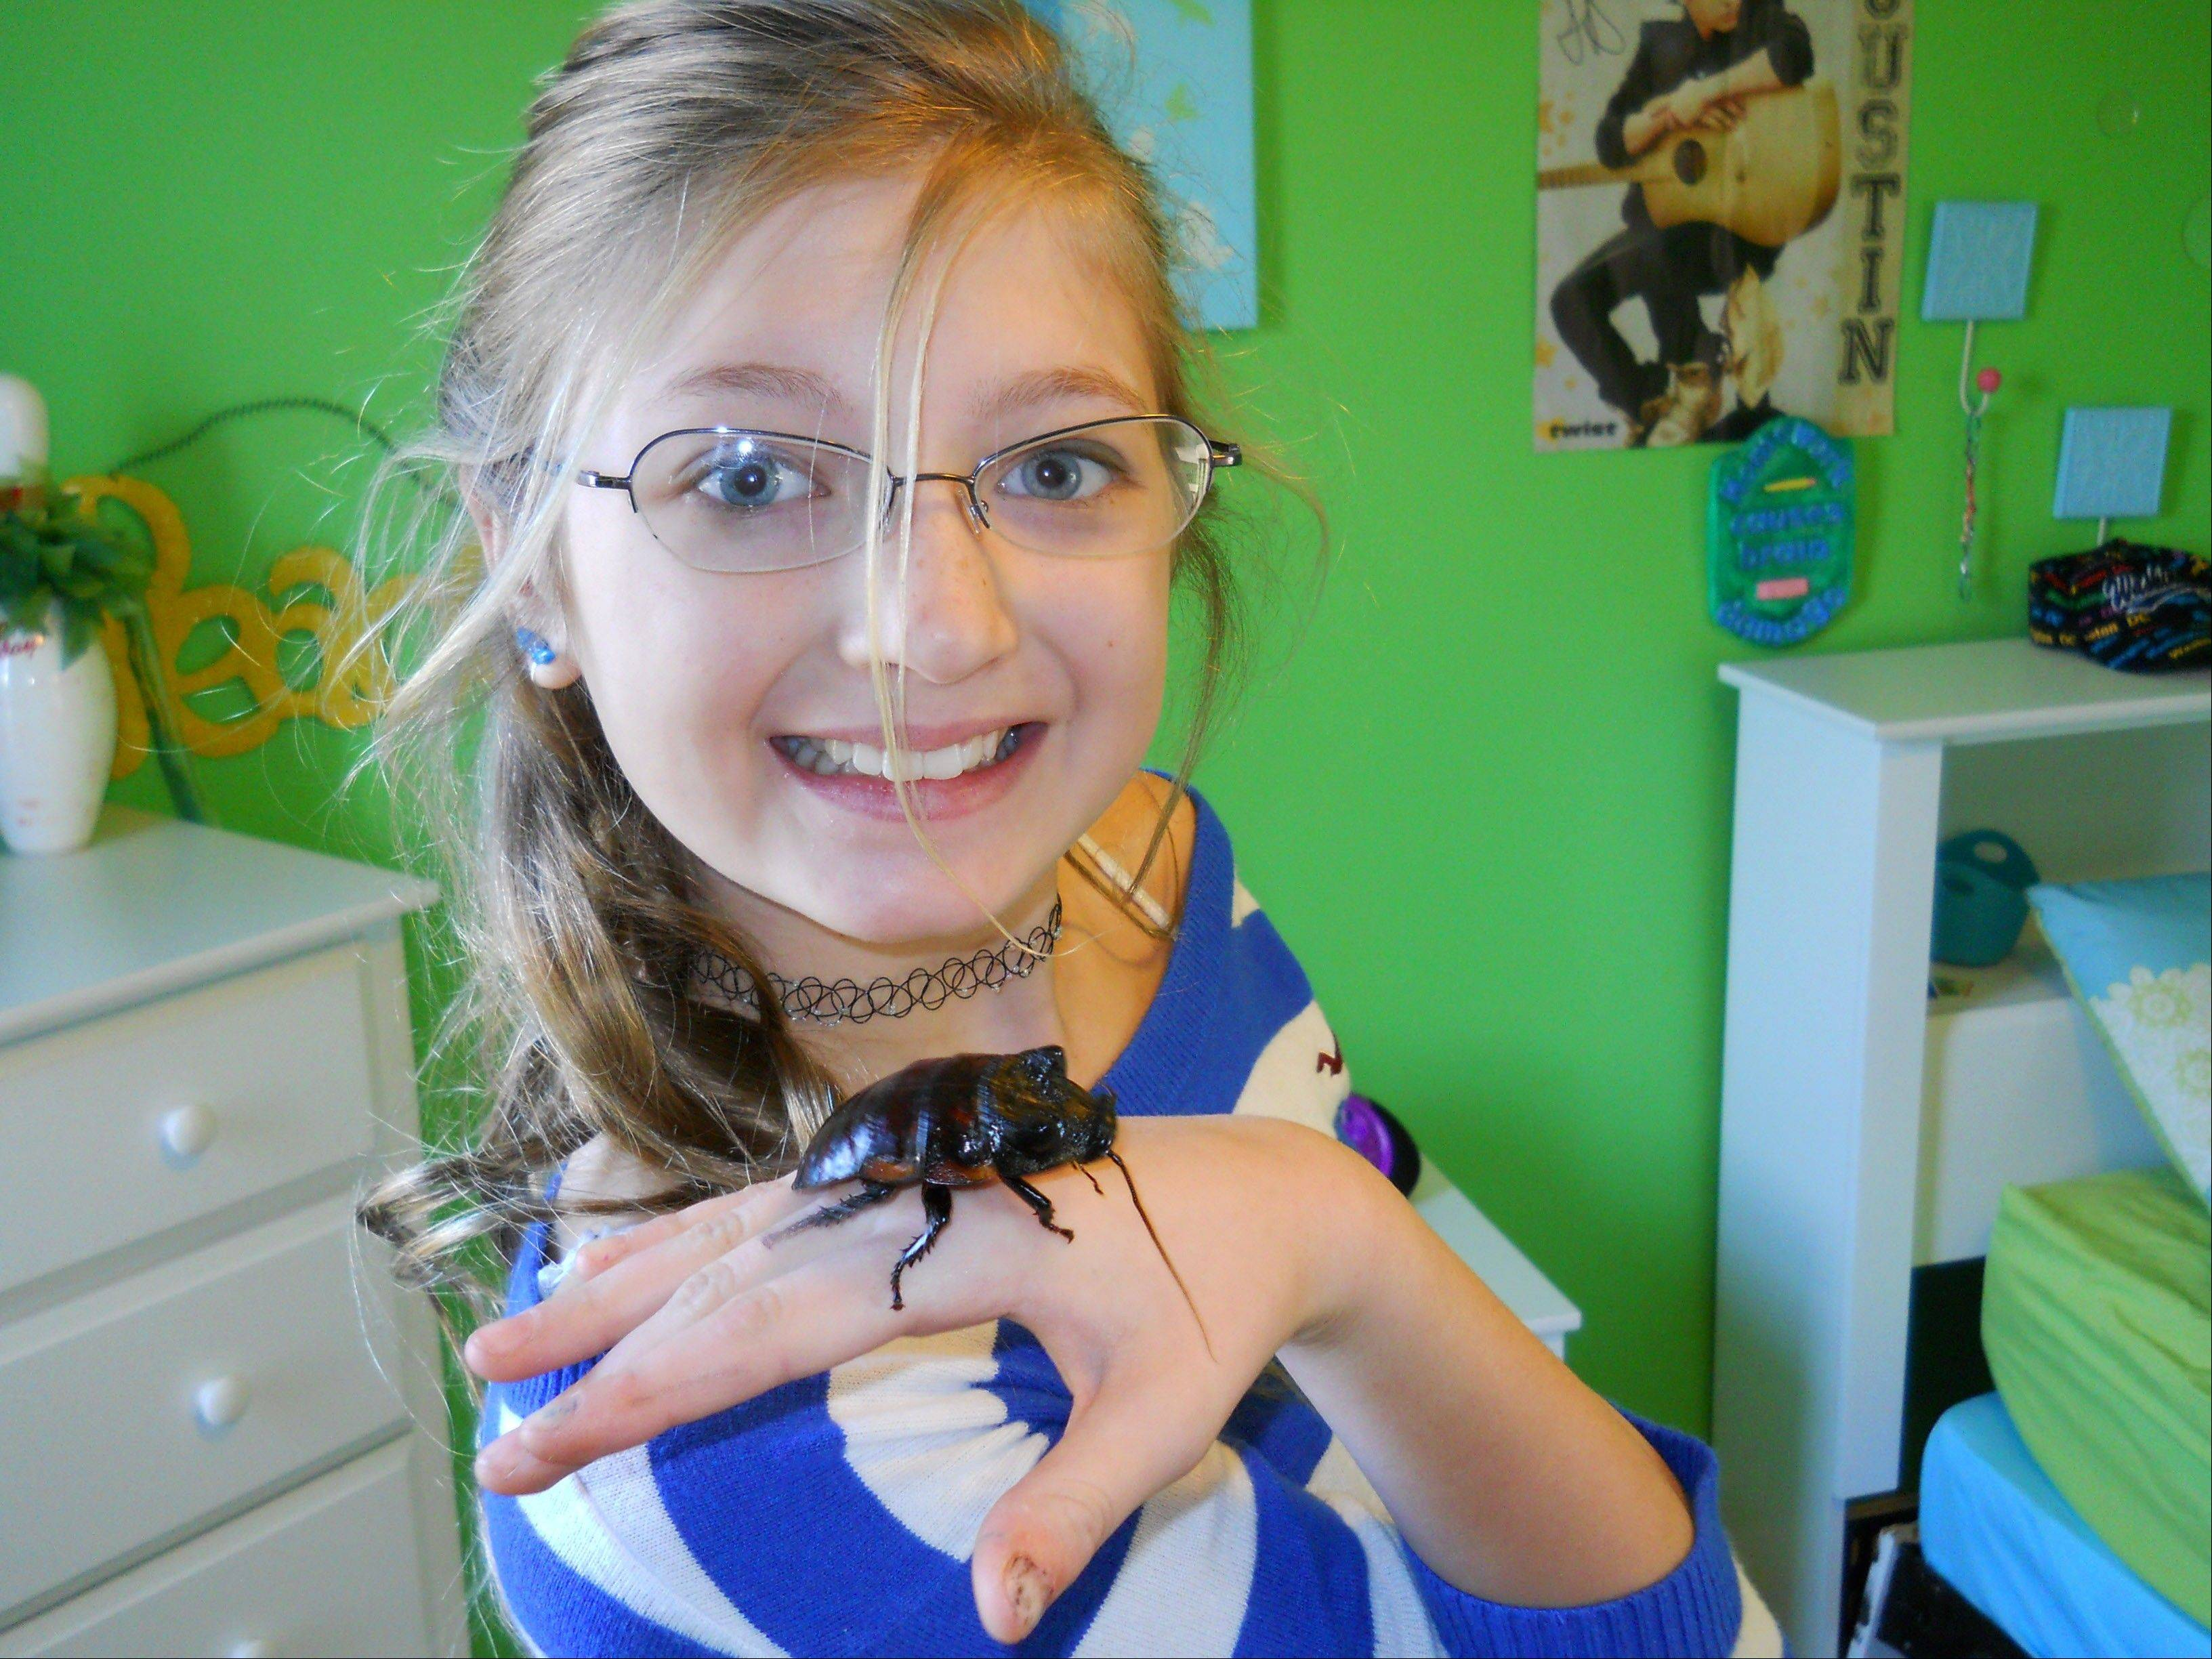 Gwynevere McMonigle with Dr. Phil, her pet hissing cockroach, Gromphadorhina portentosa. The most common pet roach, the hissing cockroach, is two to three inches long, and its name comes from the sound the insects make when disturbed.